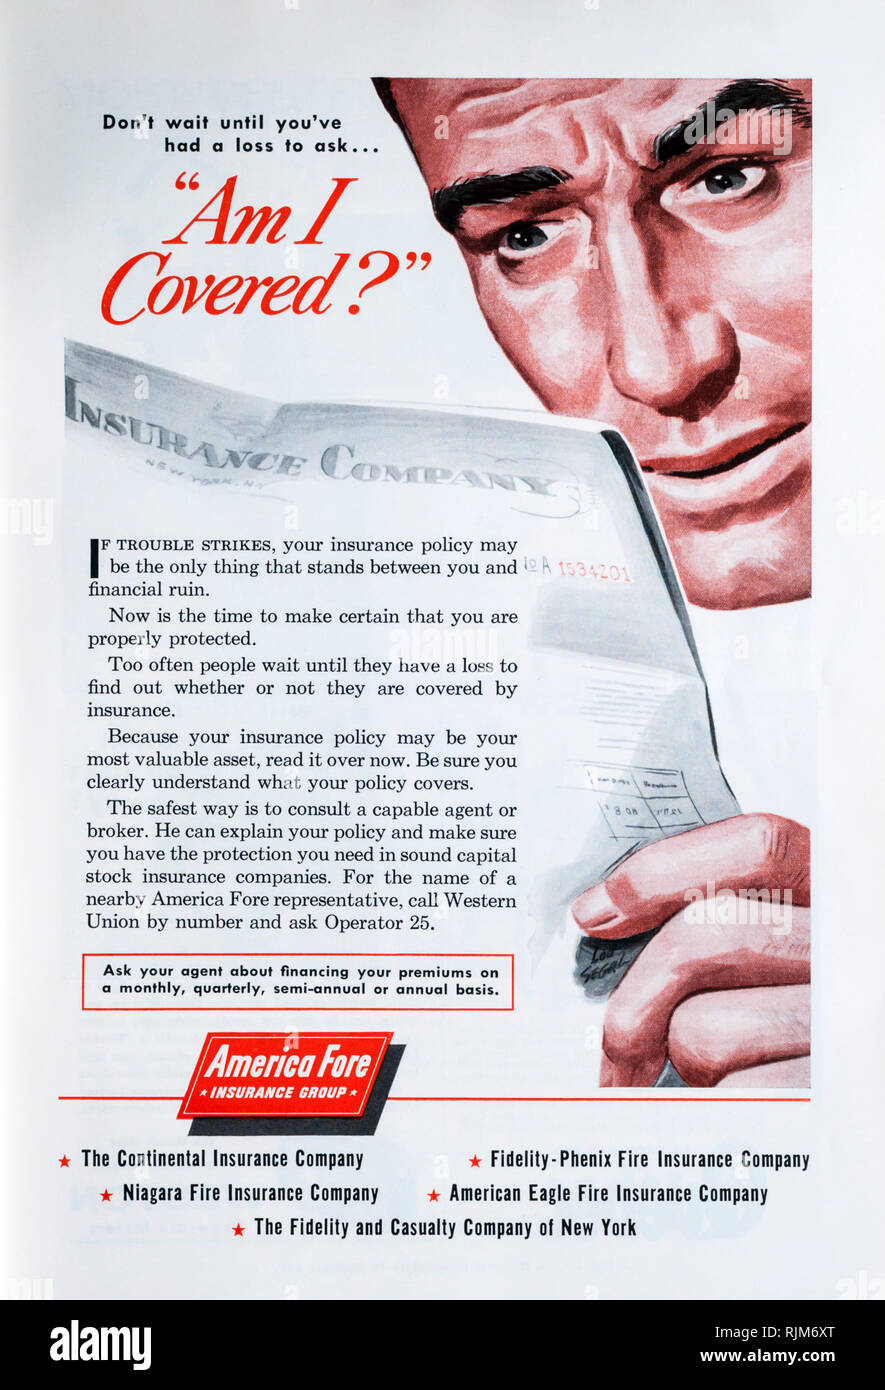 A 1955 magazine advertisement for American Fore insurance. - Stock Image